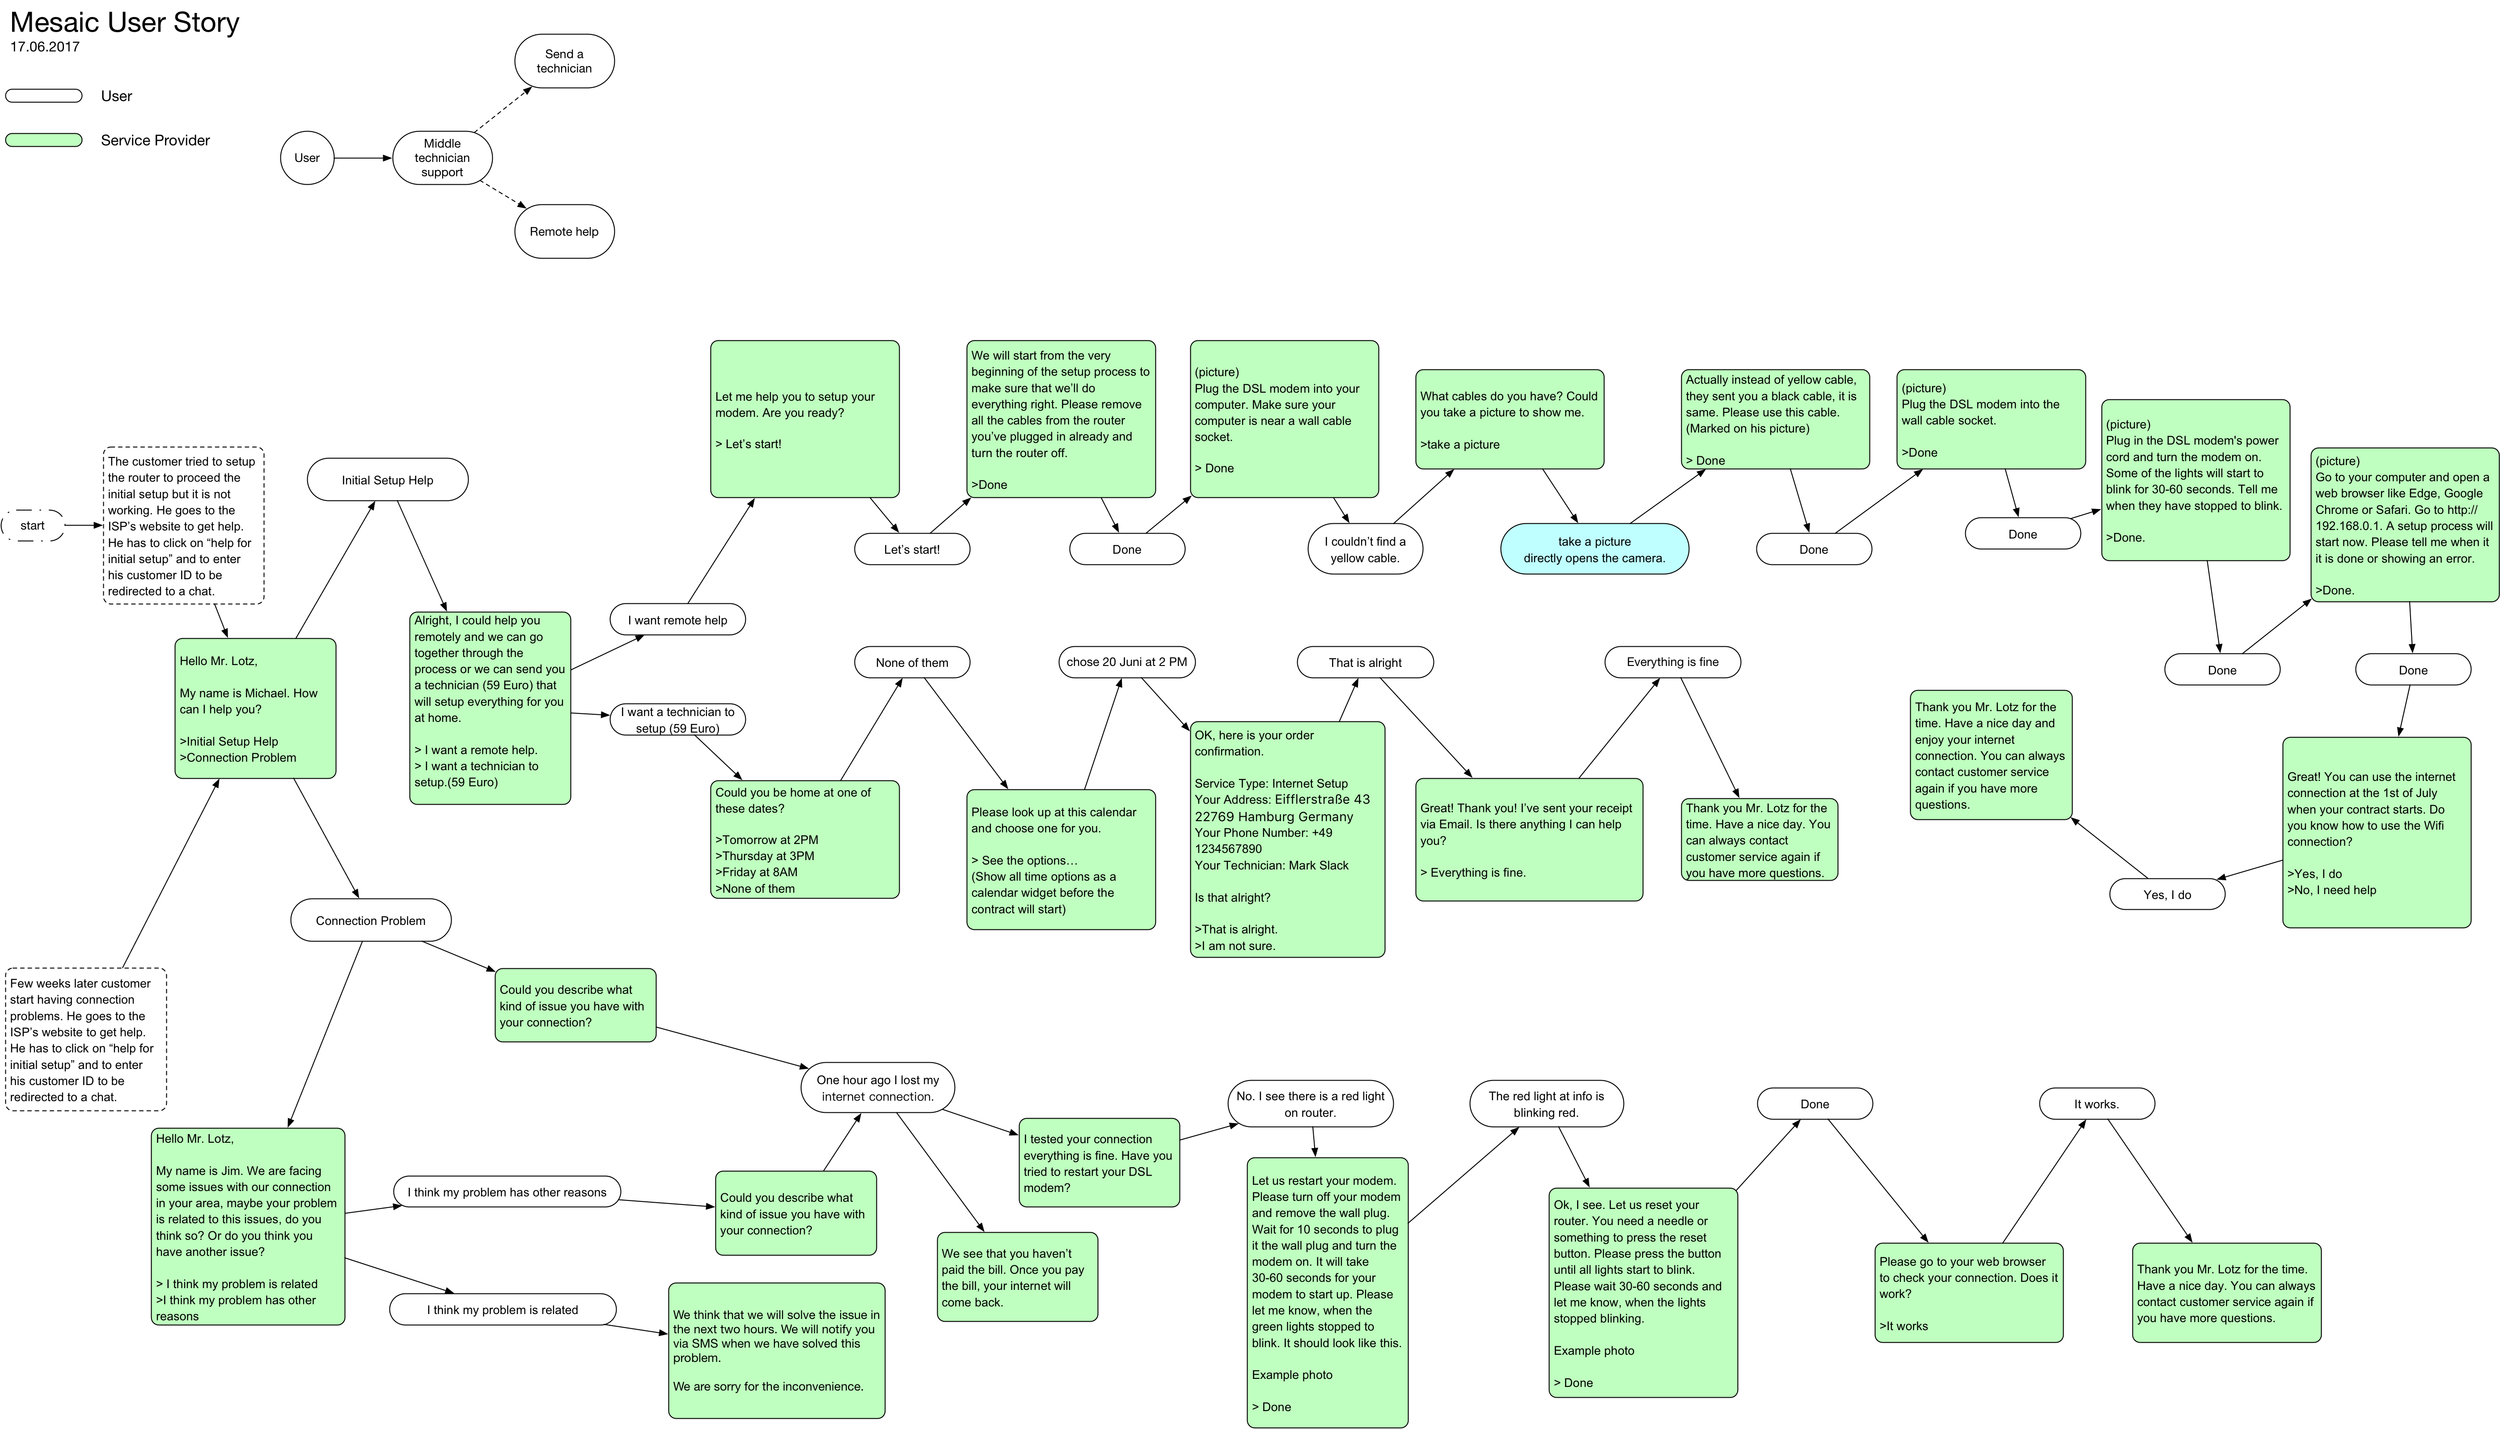 I made the User Story in order to create the scenario. Click for bigger image :)